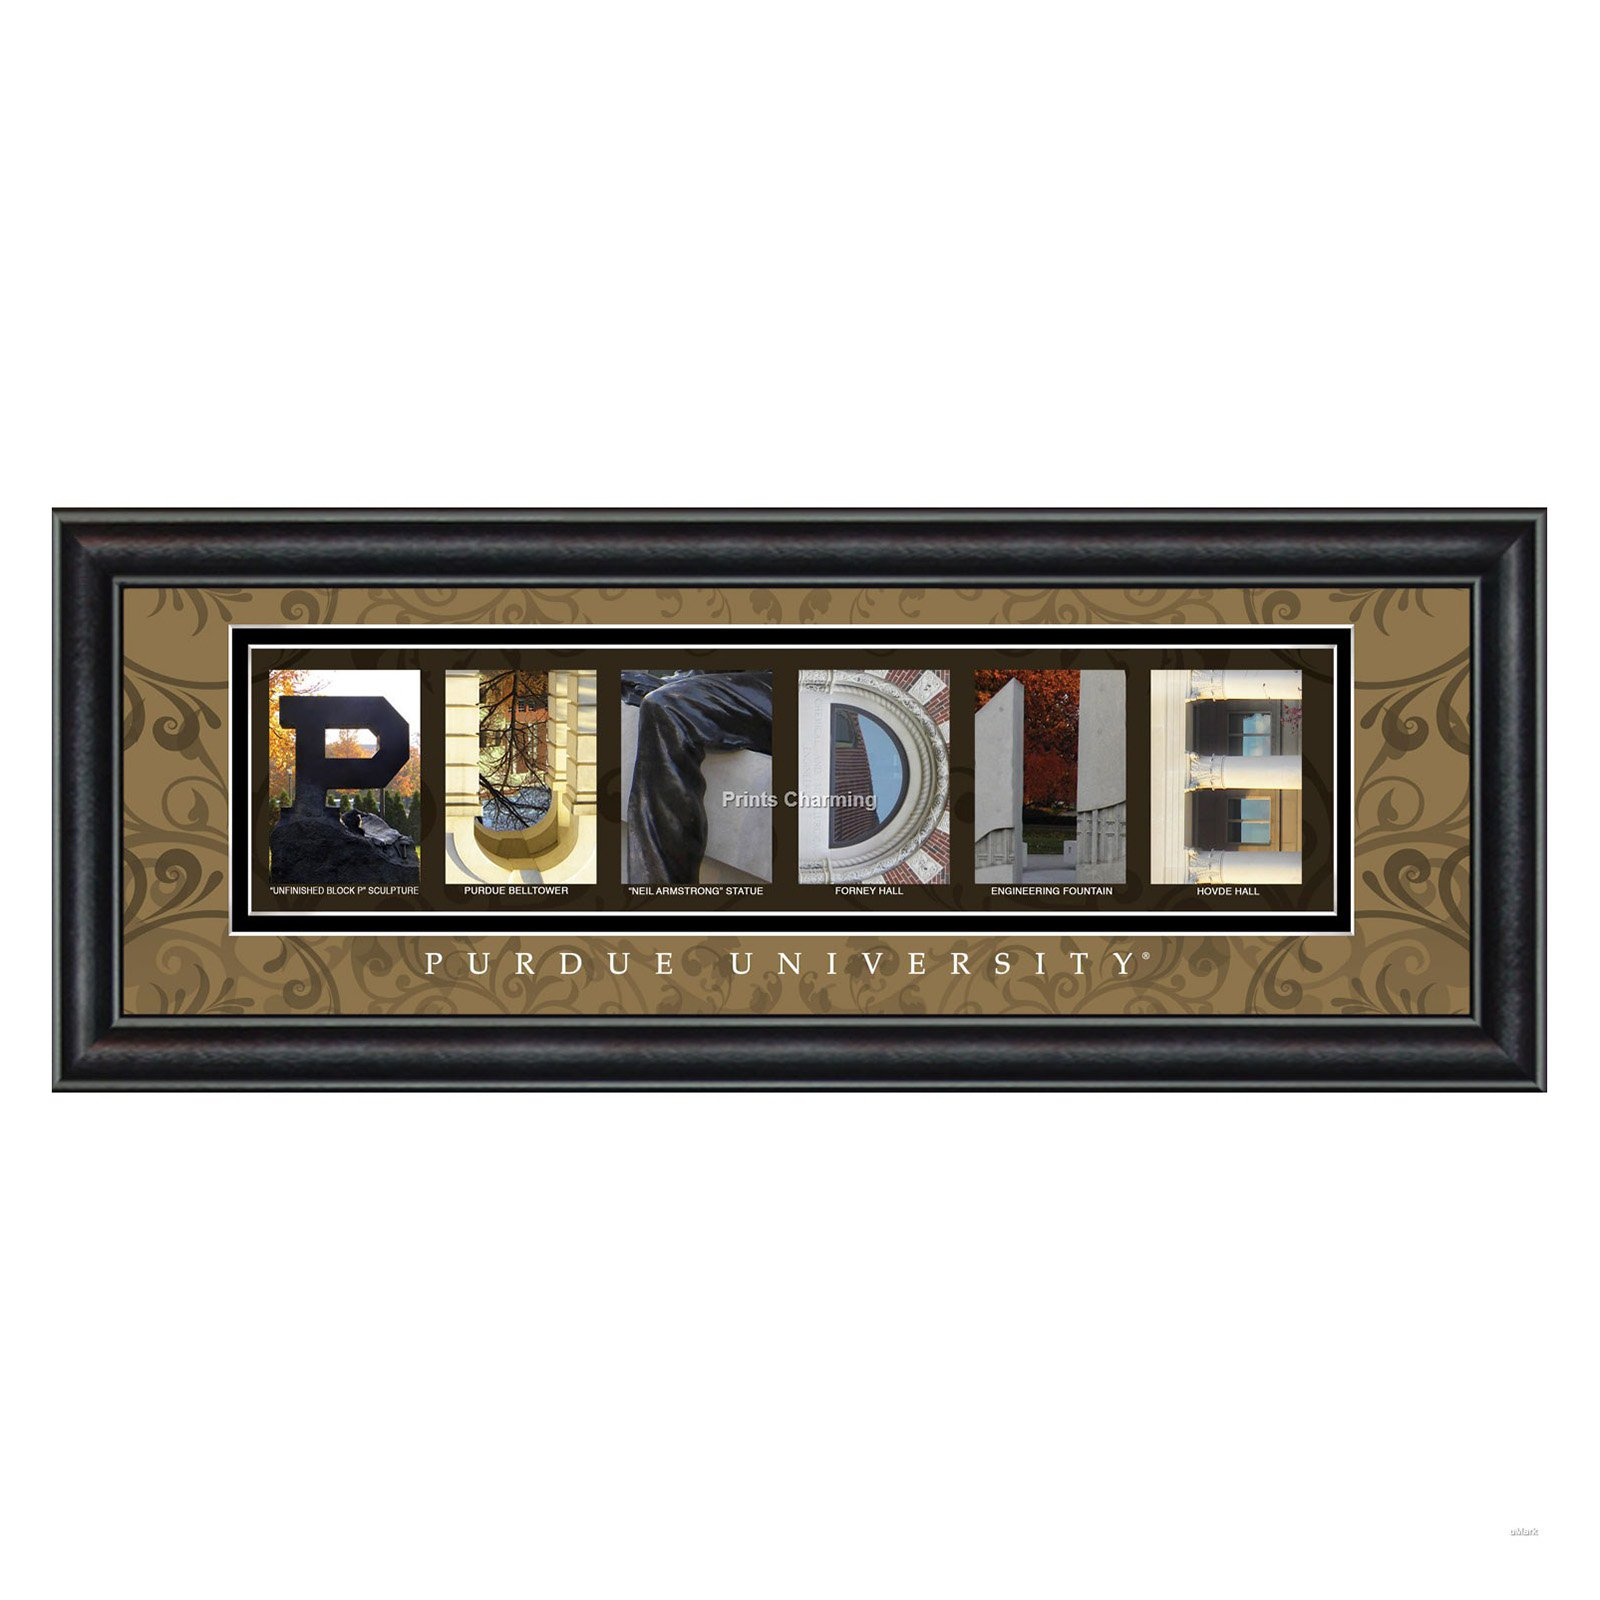 College Letter Framed Wall Art Purdue University 20w X 8h In Letter Wall Art Letter Art Framed Art